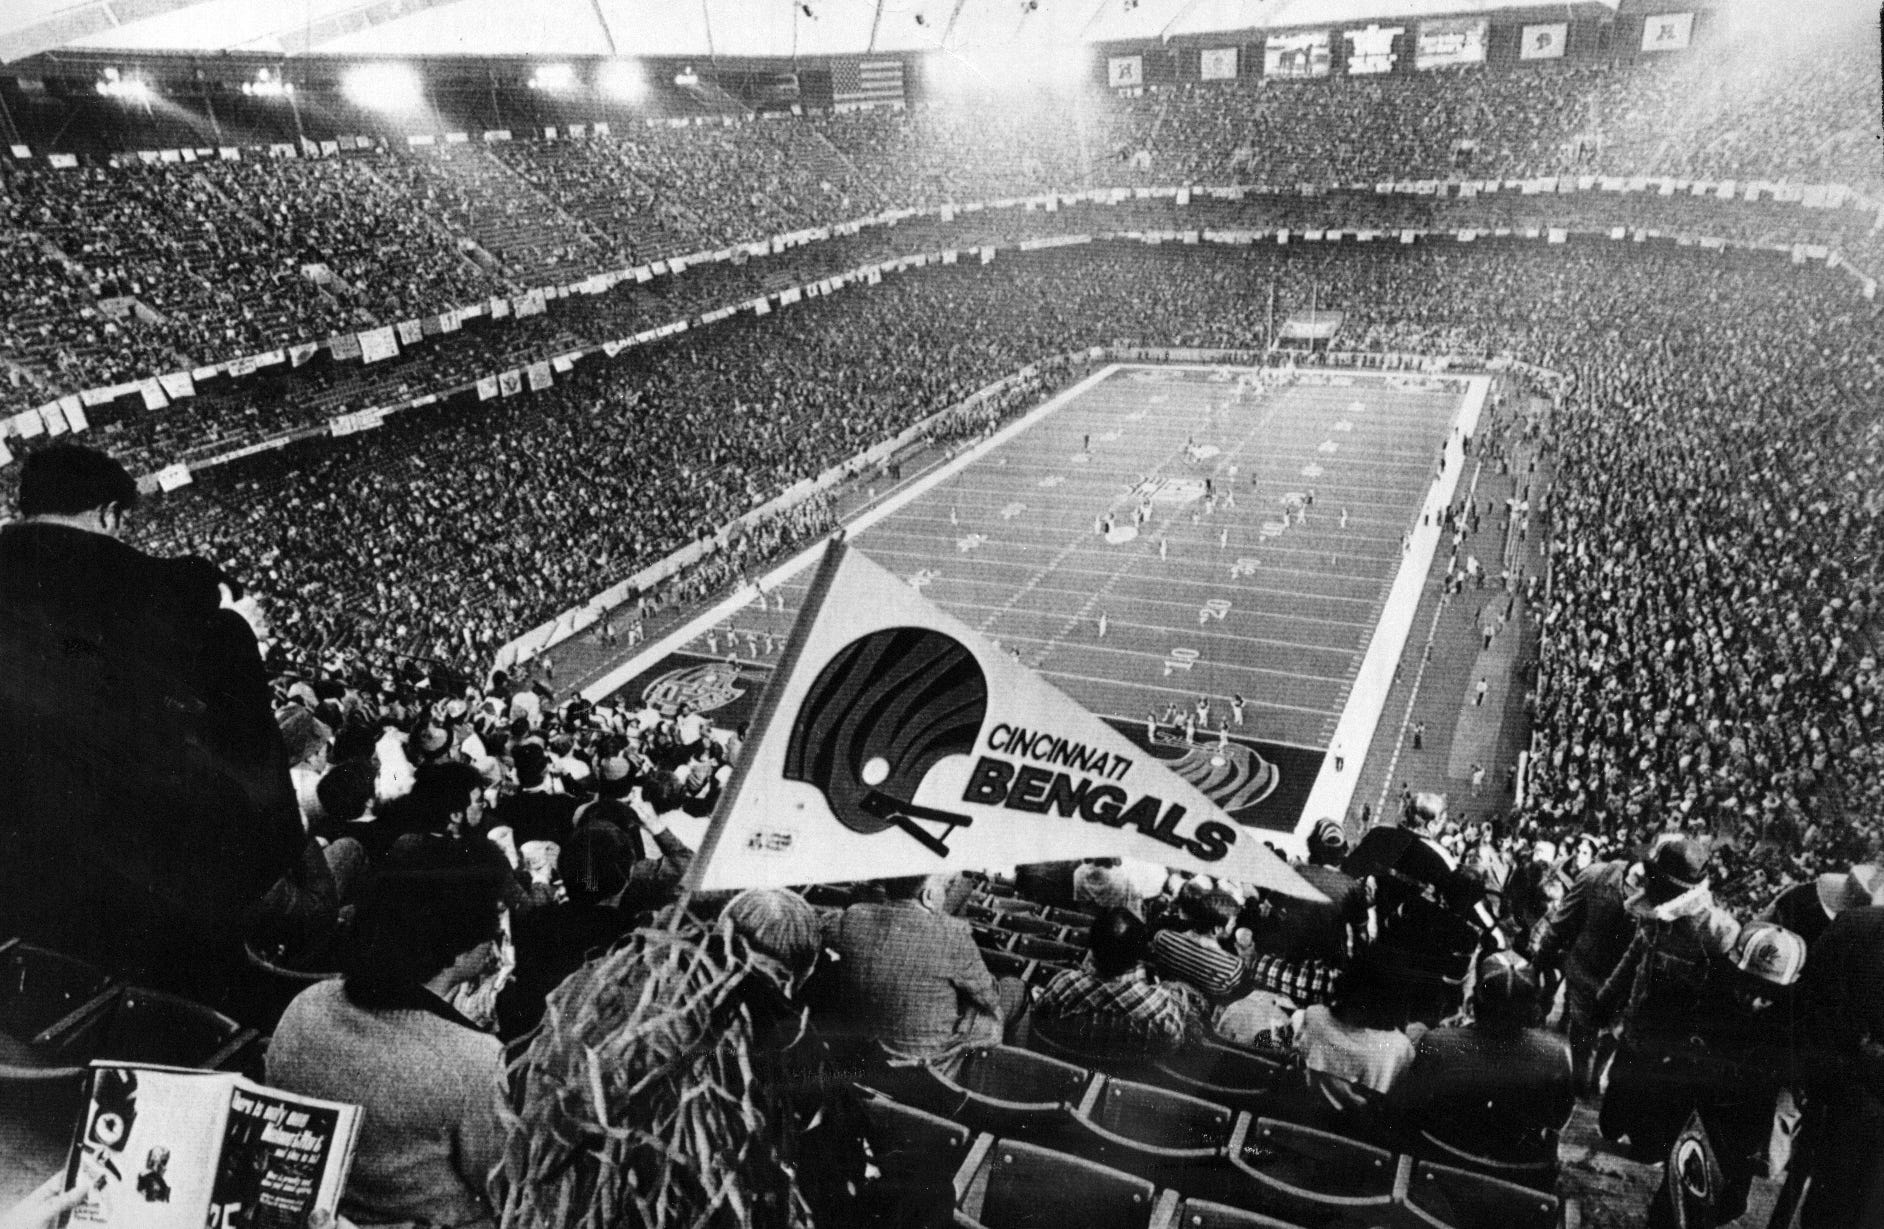 On January 24, 1982, the Silverdome hosted Super Bowl